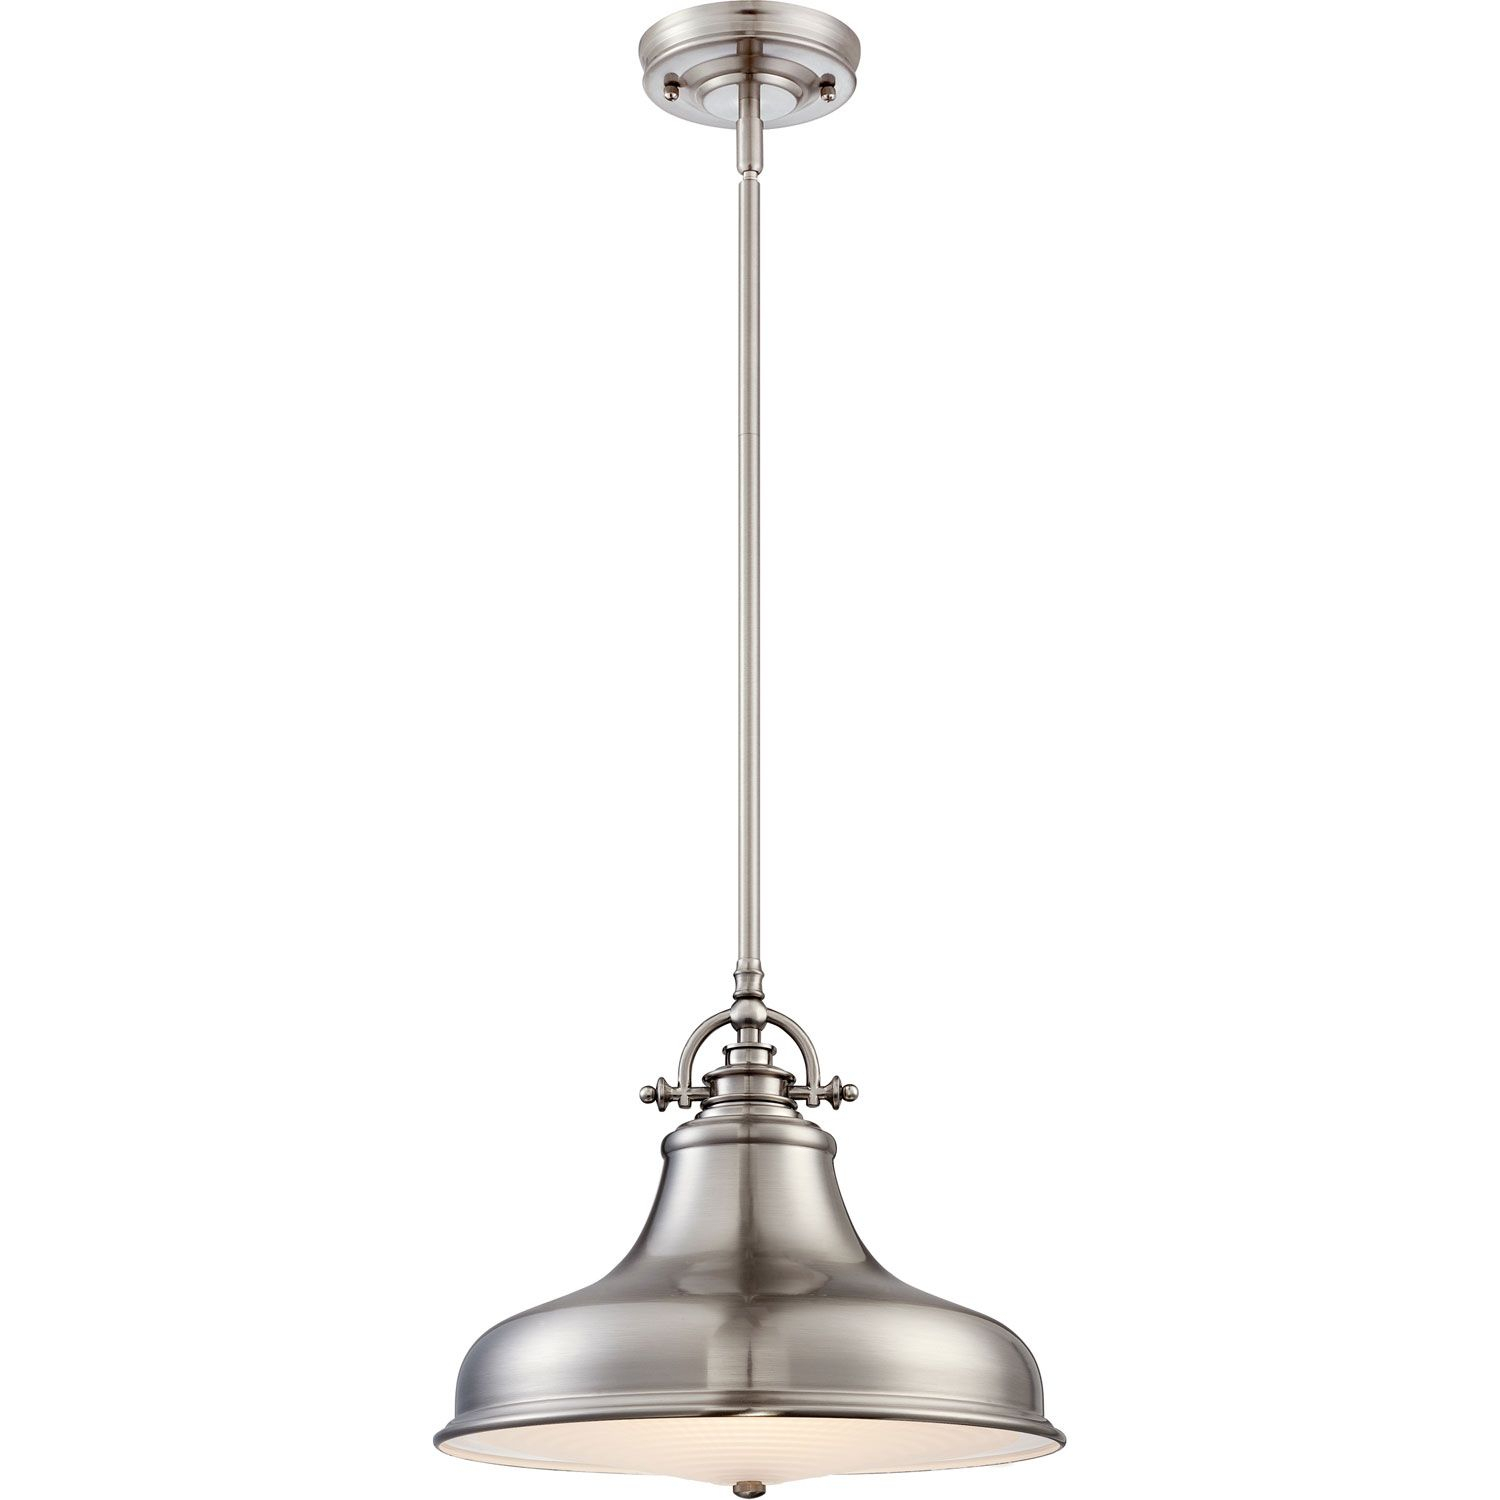 Quoizel Emery Brushed Nickel One Light Pendant | Lights Over Within Mueller 1 Light Single Dome Pendants (View 26 of 30)